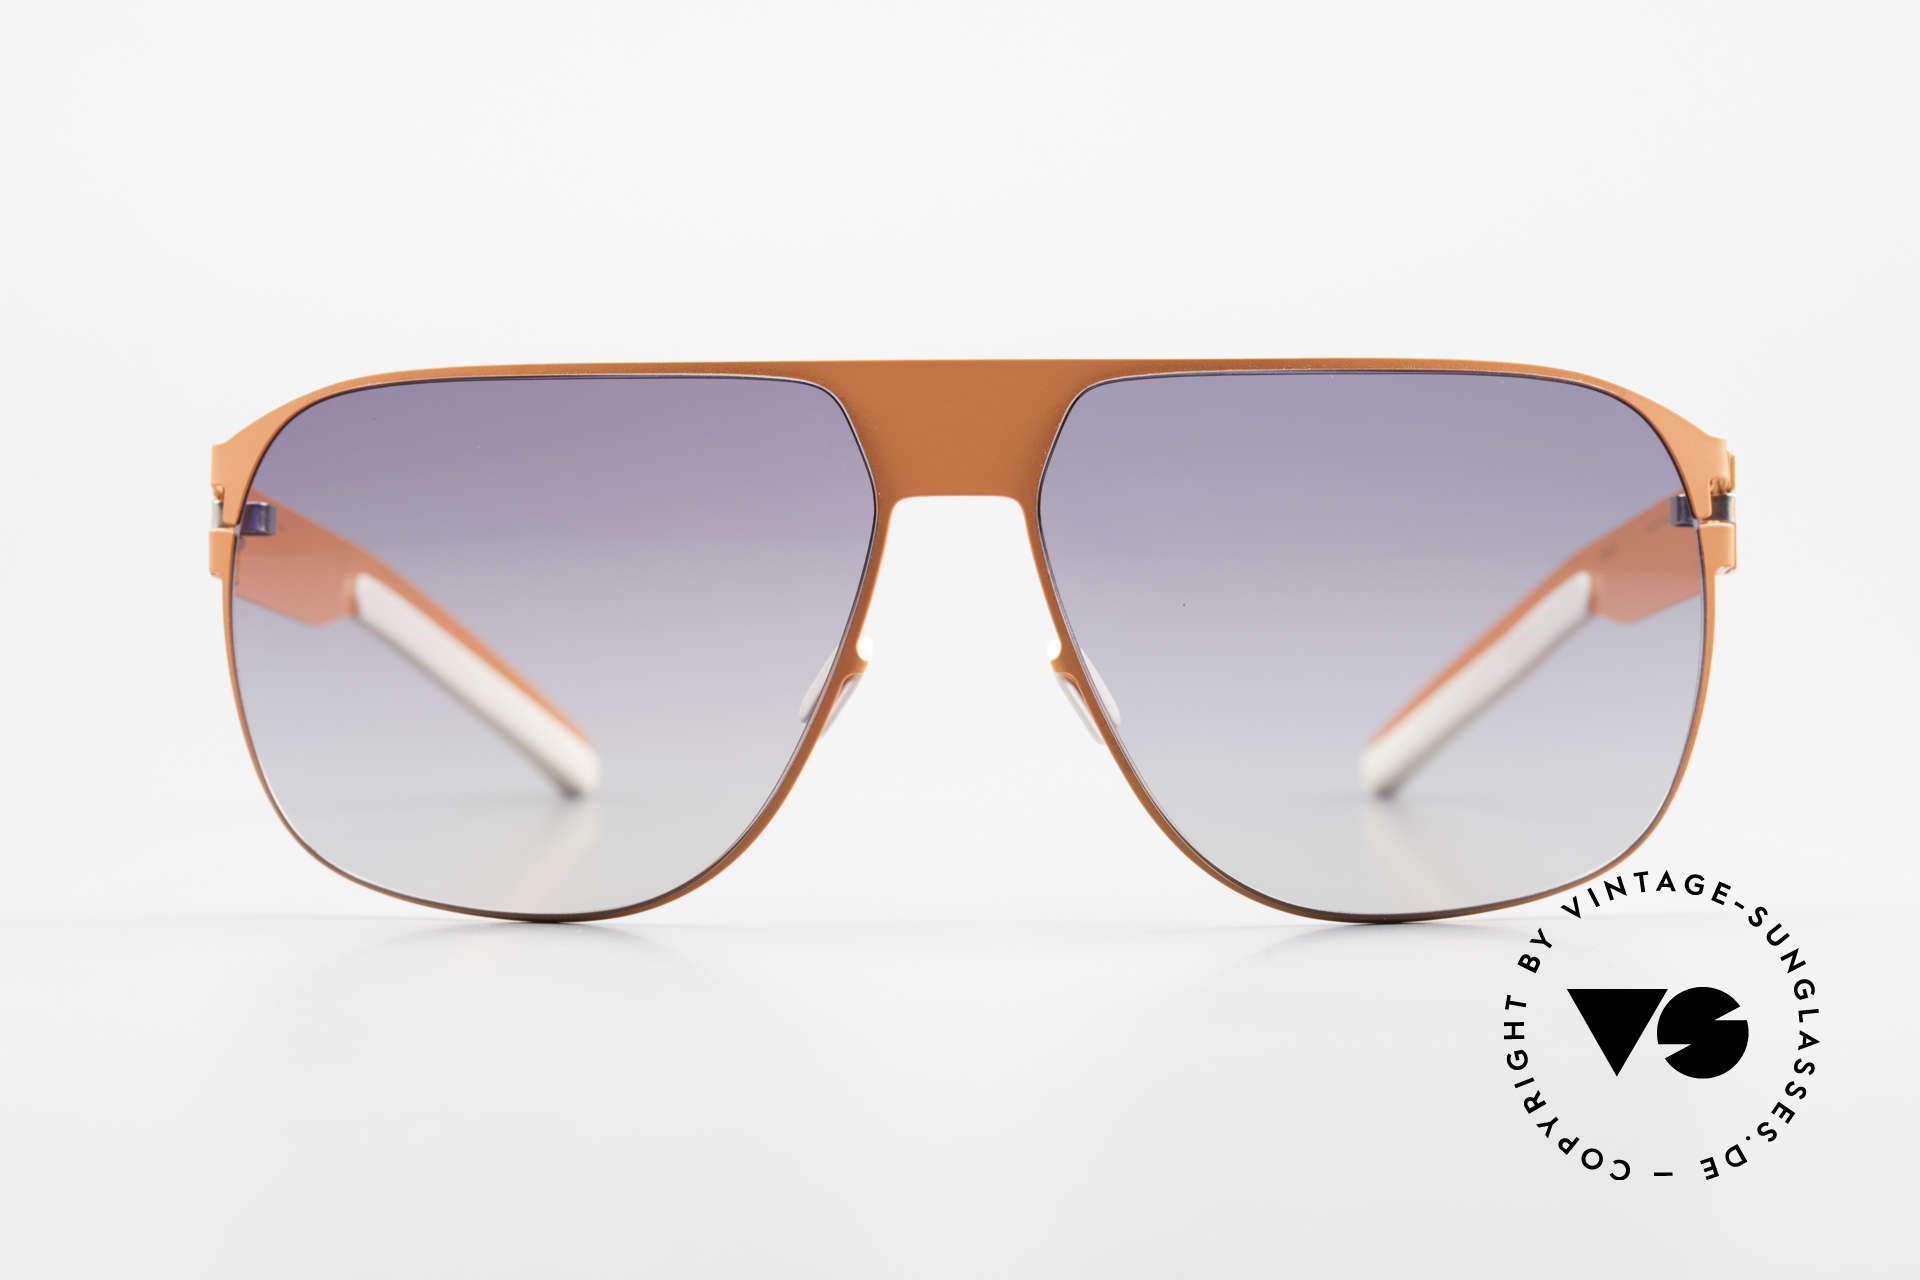 Mykita Tim Collection No 1 Shades 2011's, MYKITA: the youngest brand in our vintage collection, Made for Men